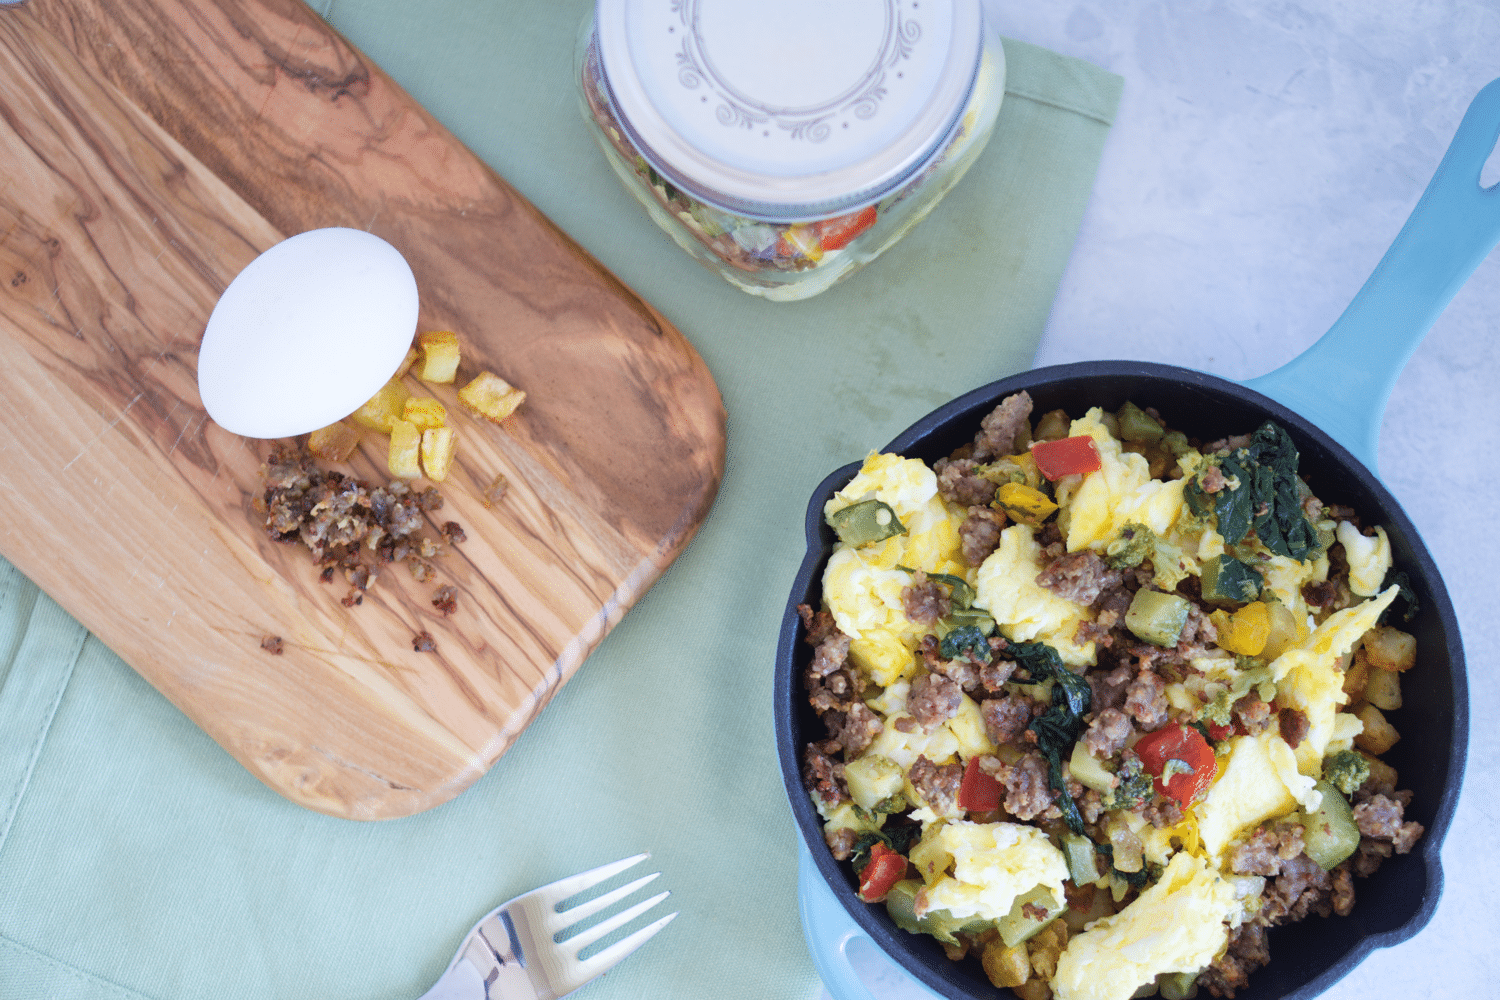 DIY Layered Breakfast Skillet With Friends